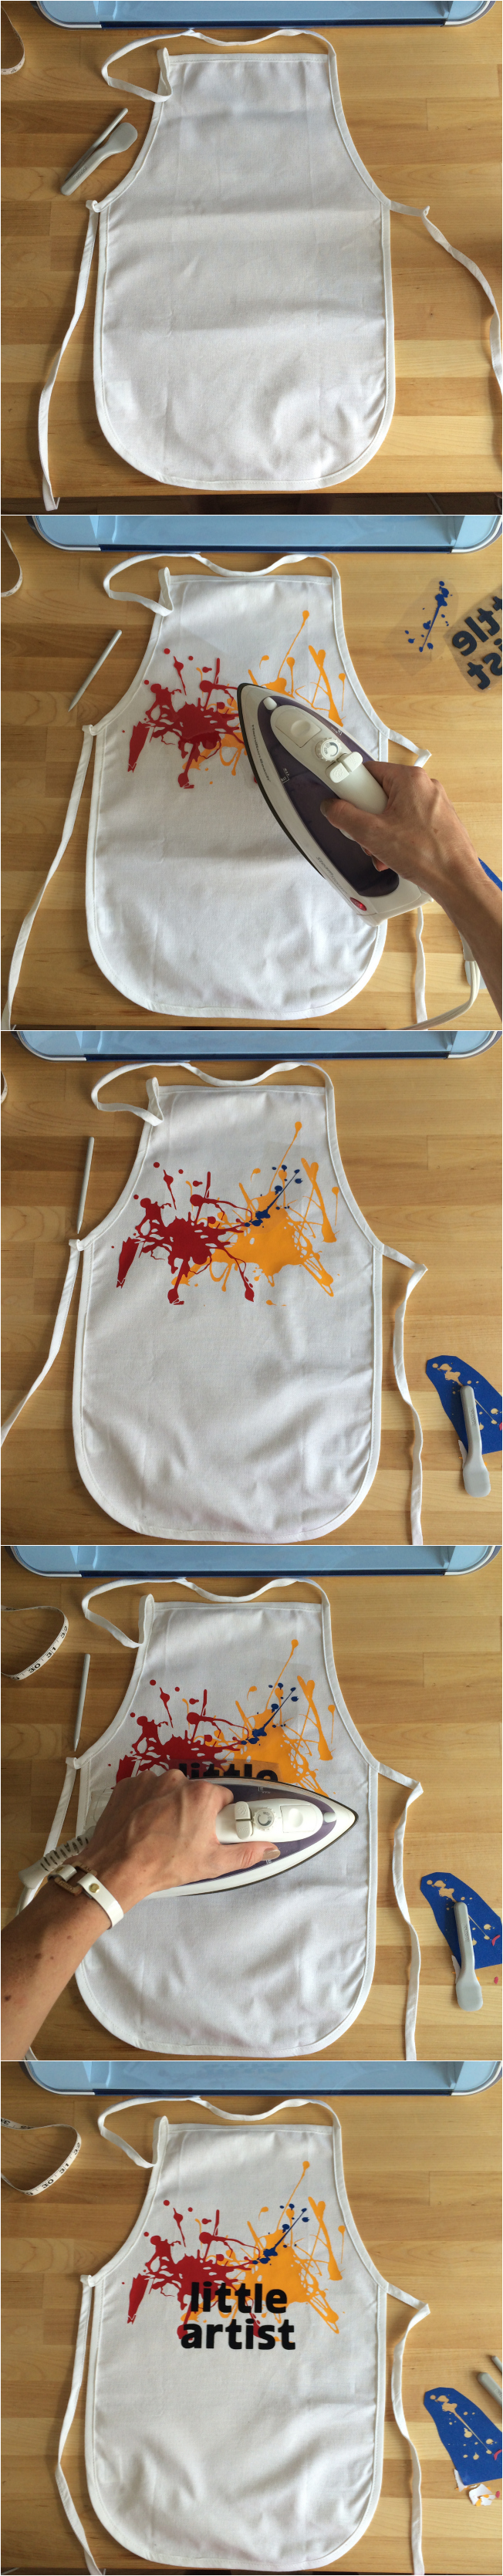 little artist apron